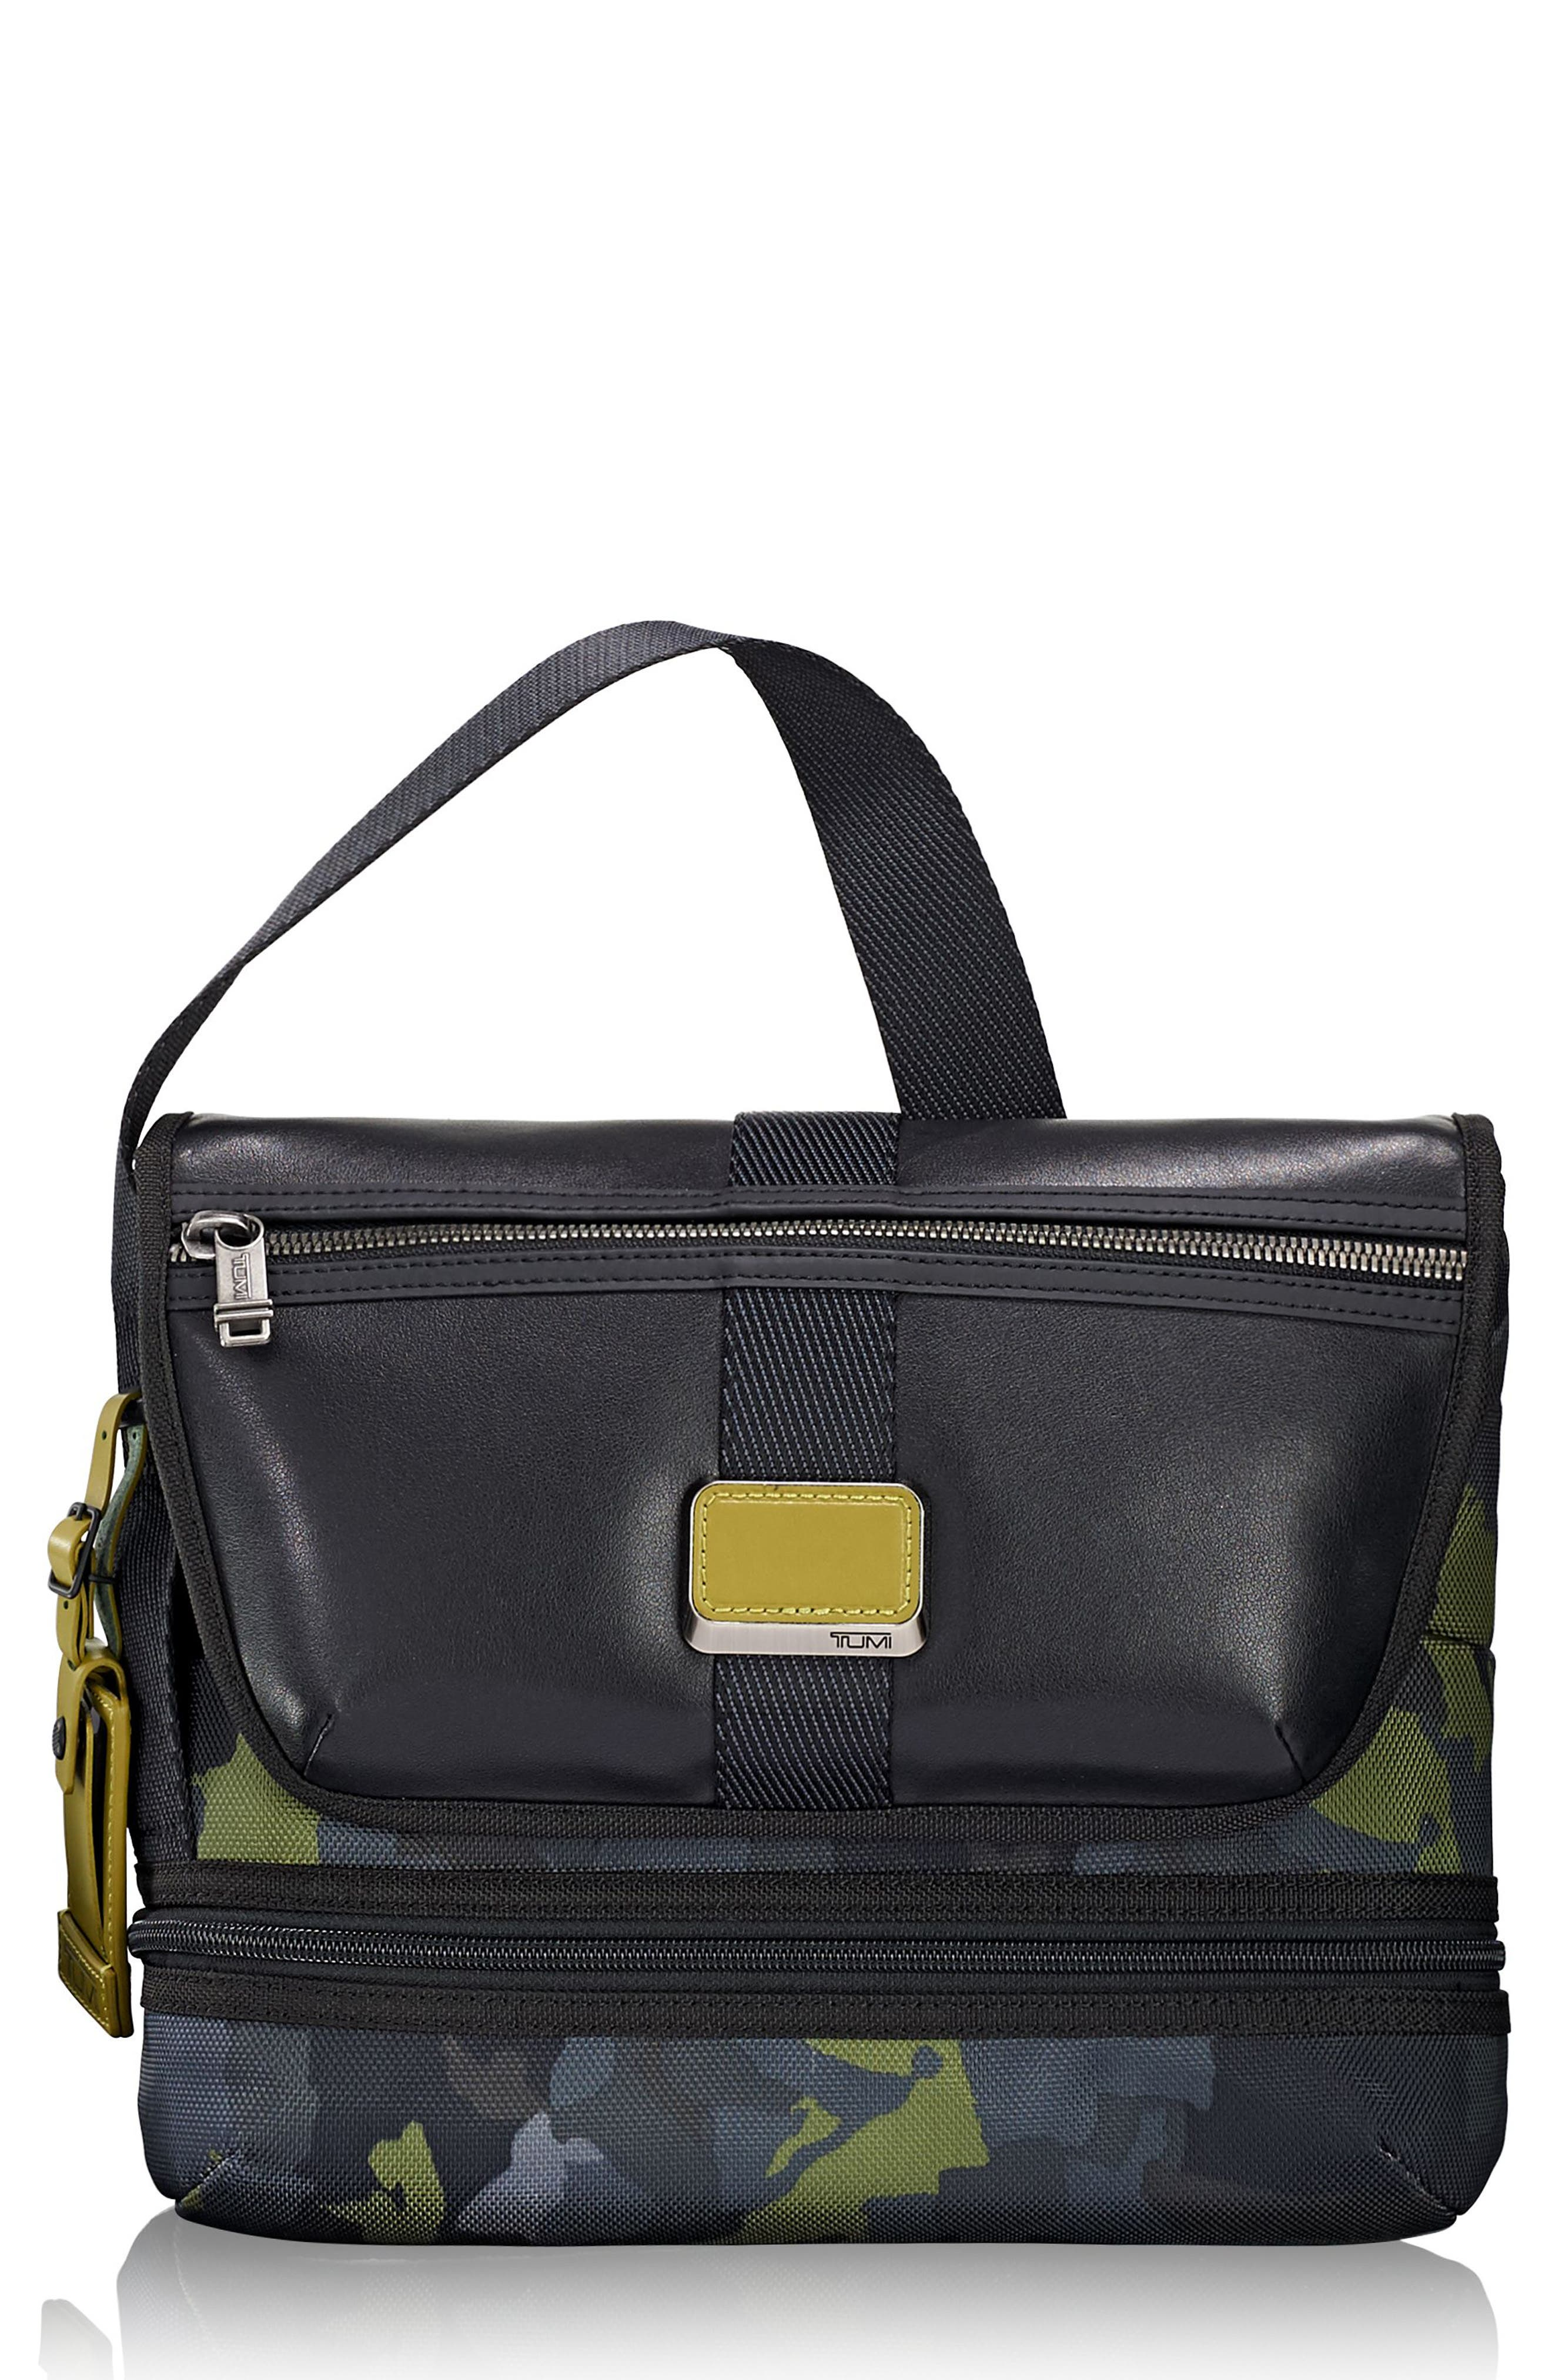 Main Image - Tumi Alpha Bravo - Travis Crossbody Messenger Bag